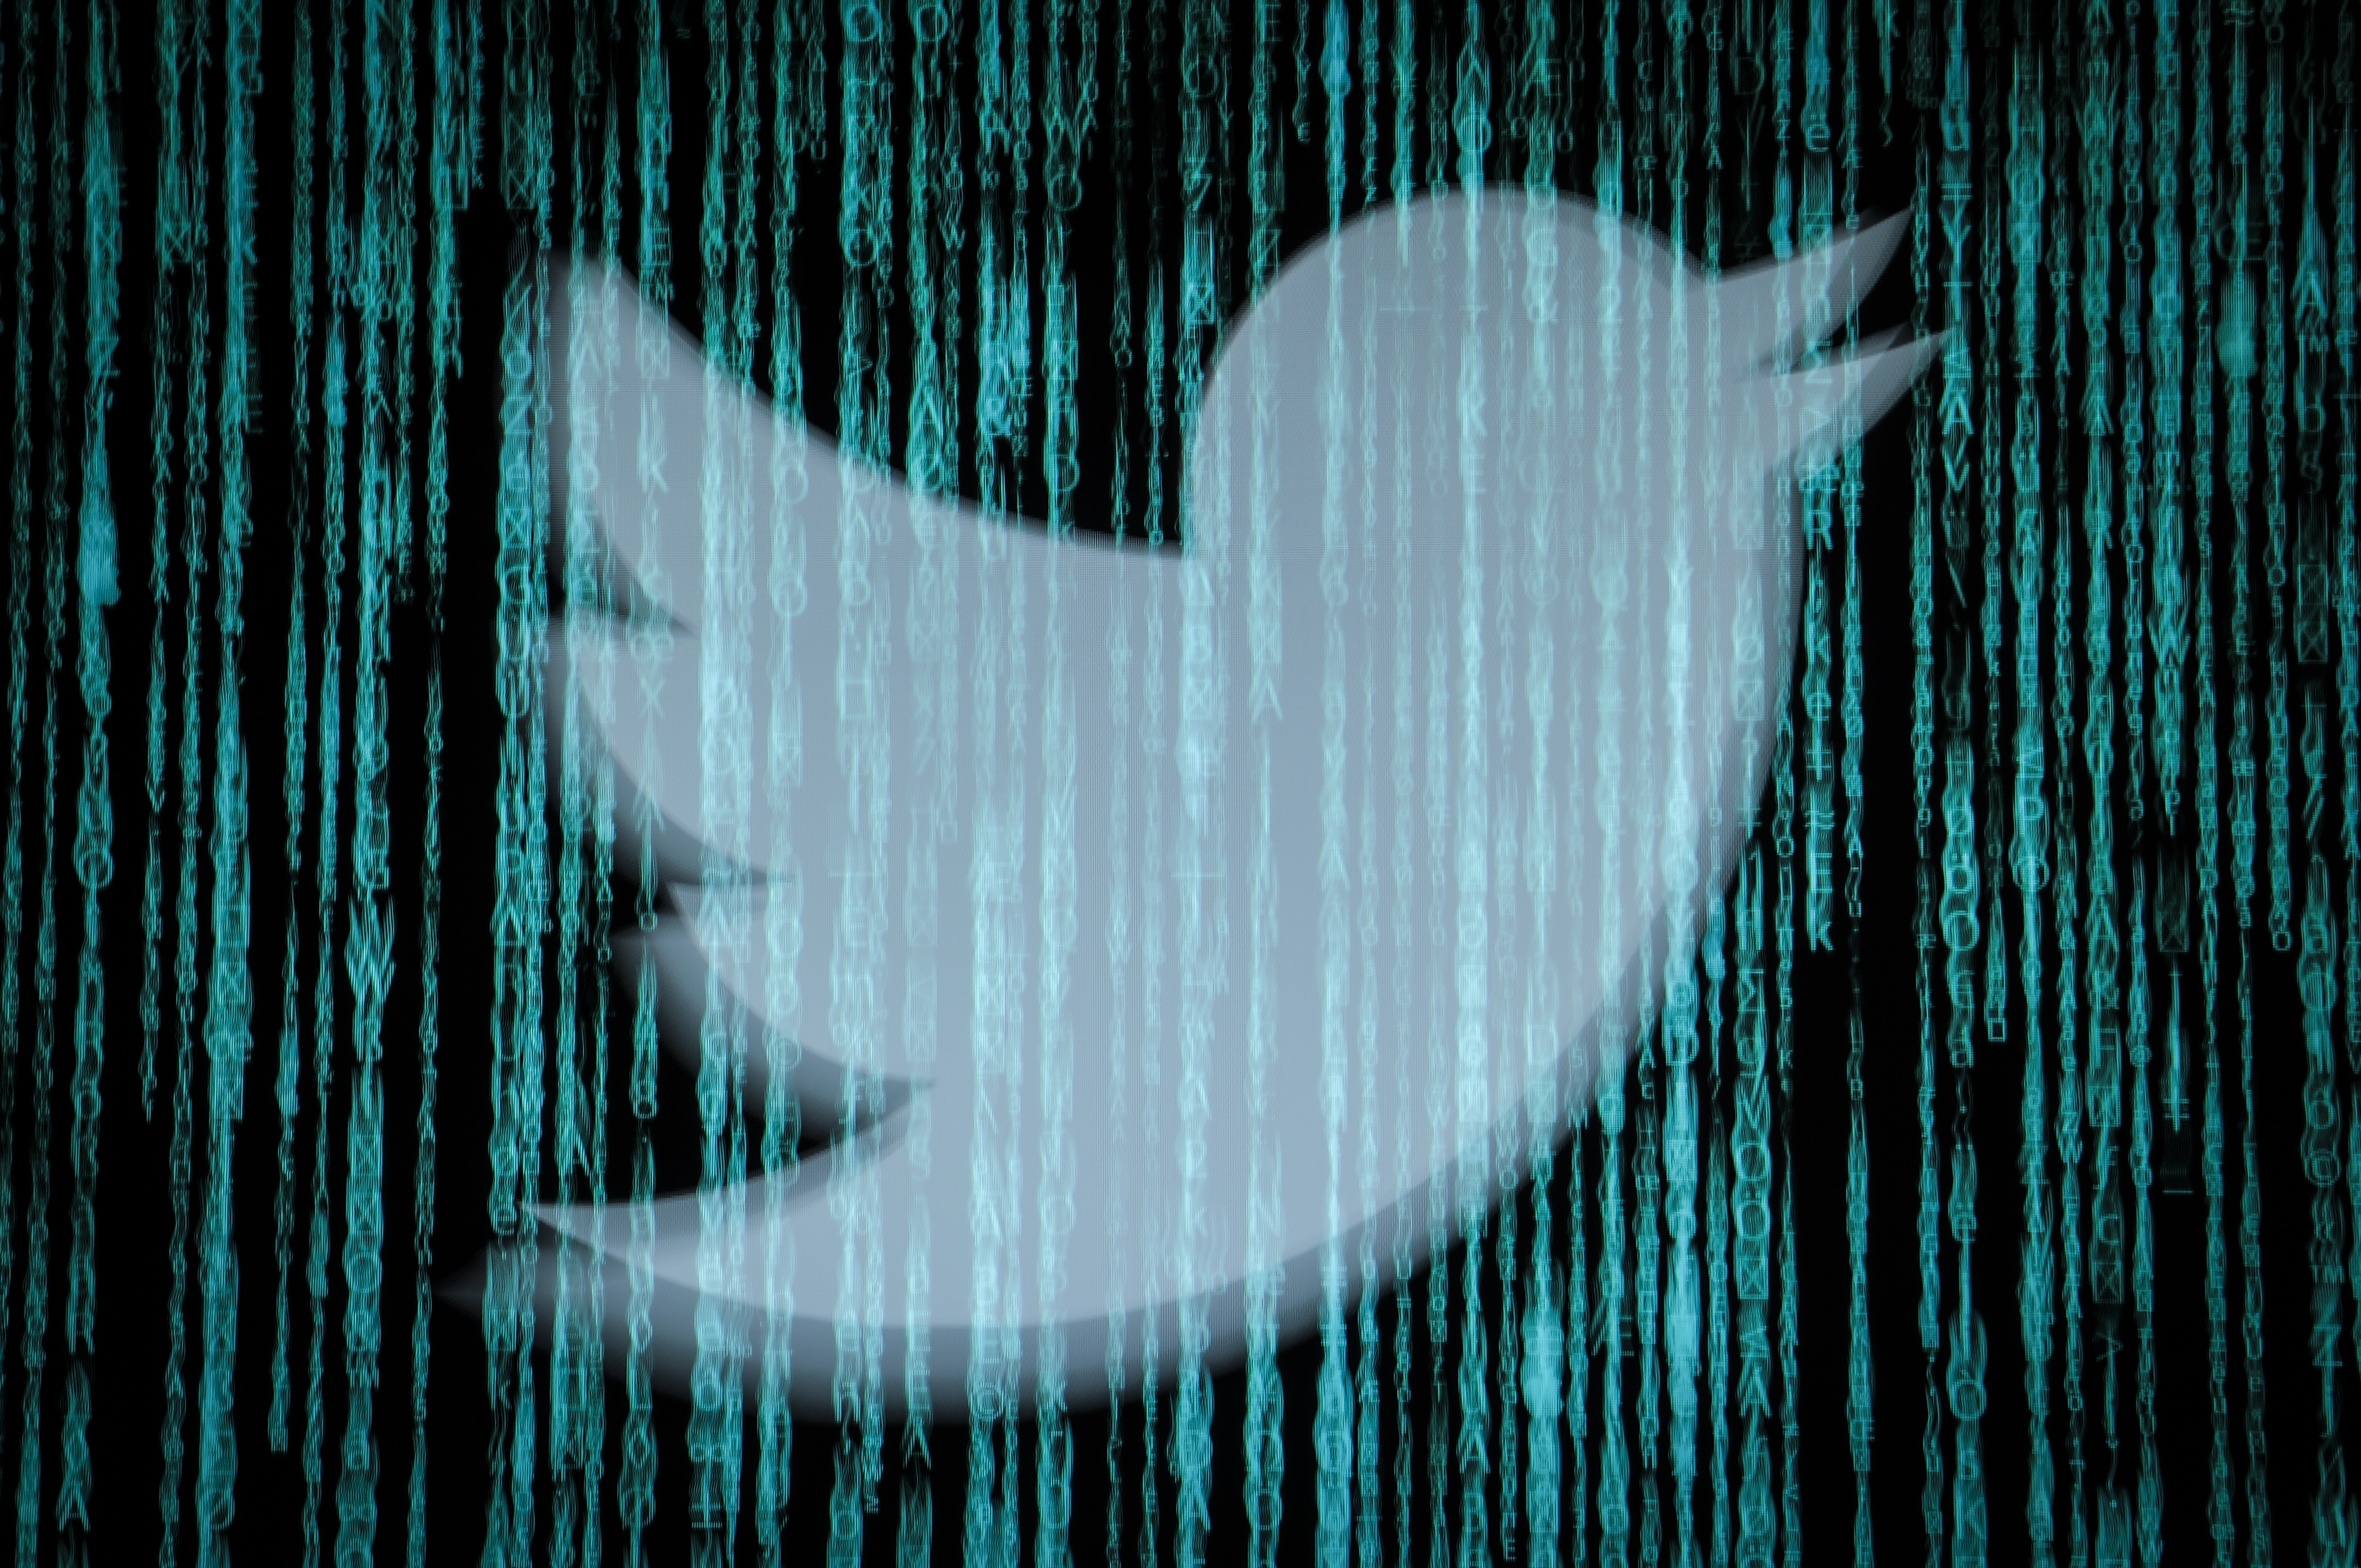 A photo illustration of the Twitter bird logo covered in Matrix-style computer screen lines